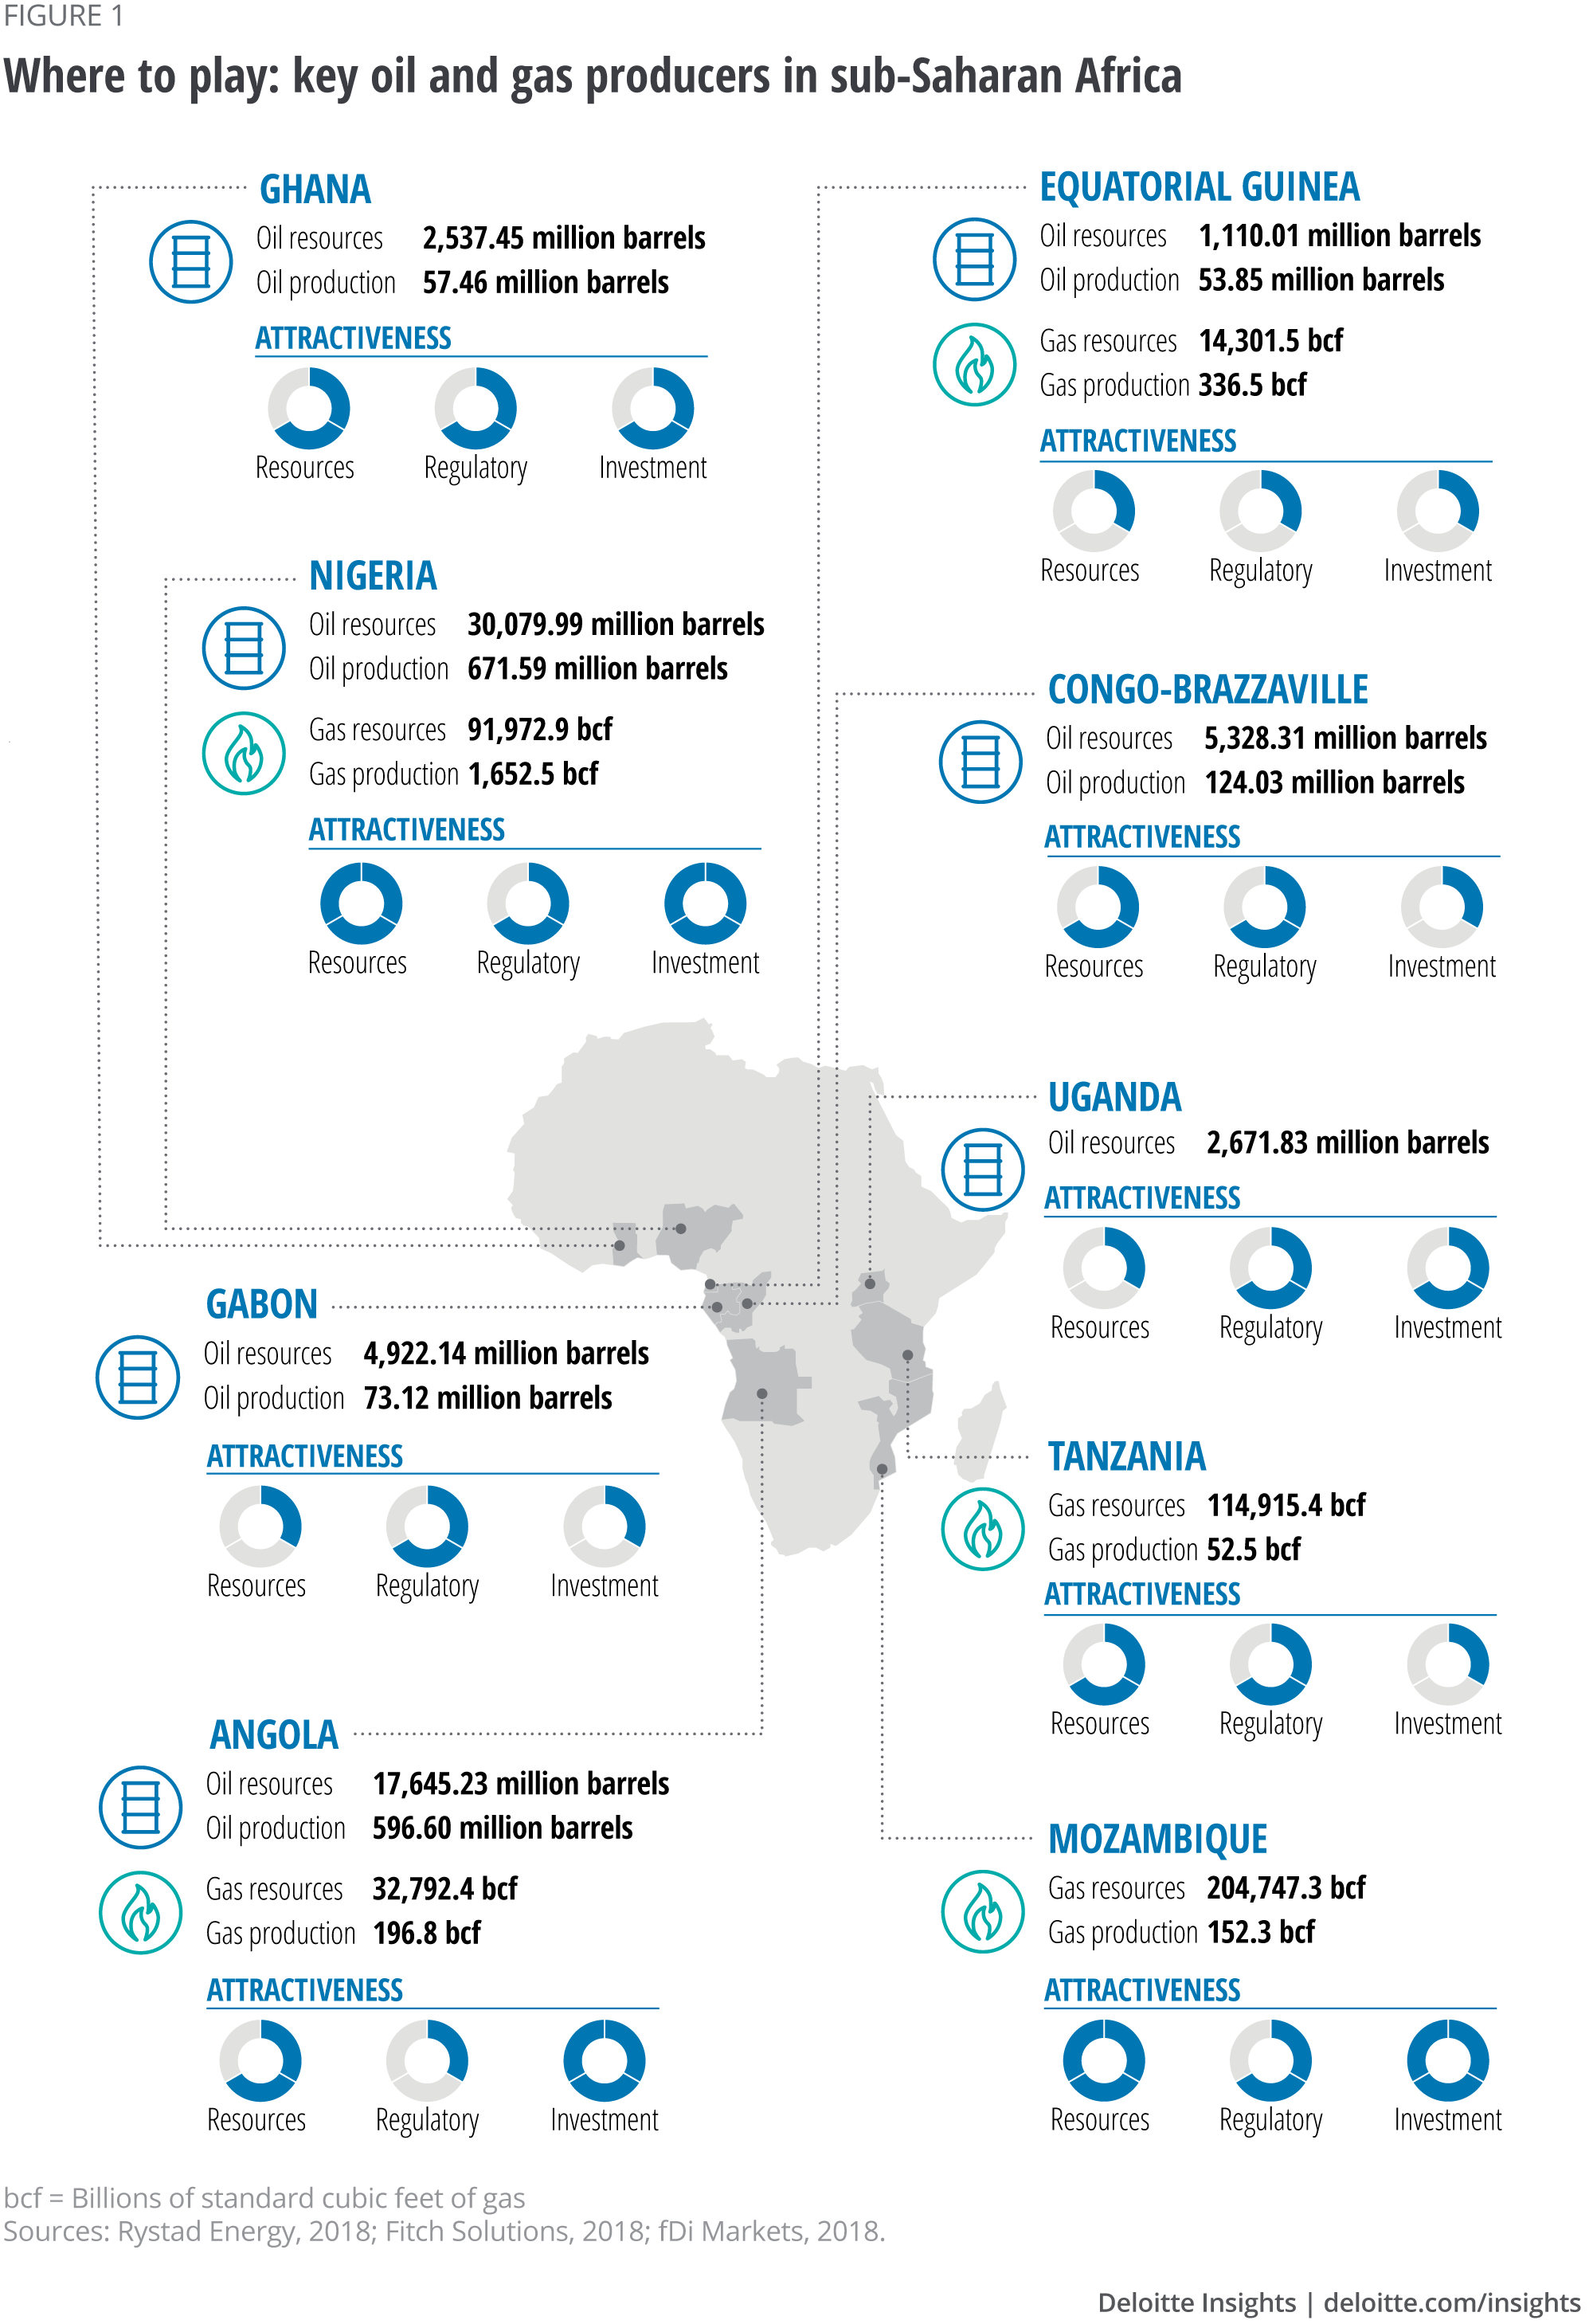 Where to play: key oil and gas producers in sub-Saharan Africa